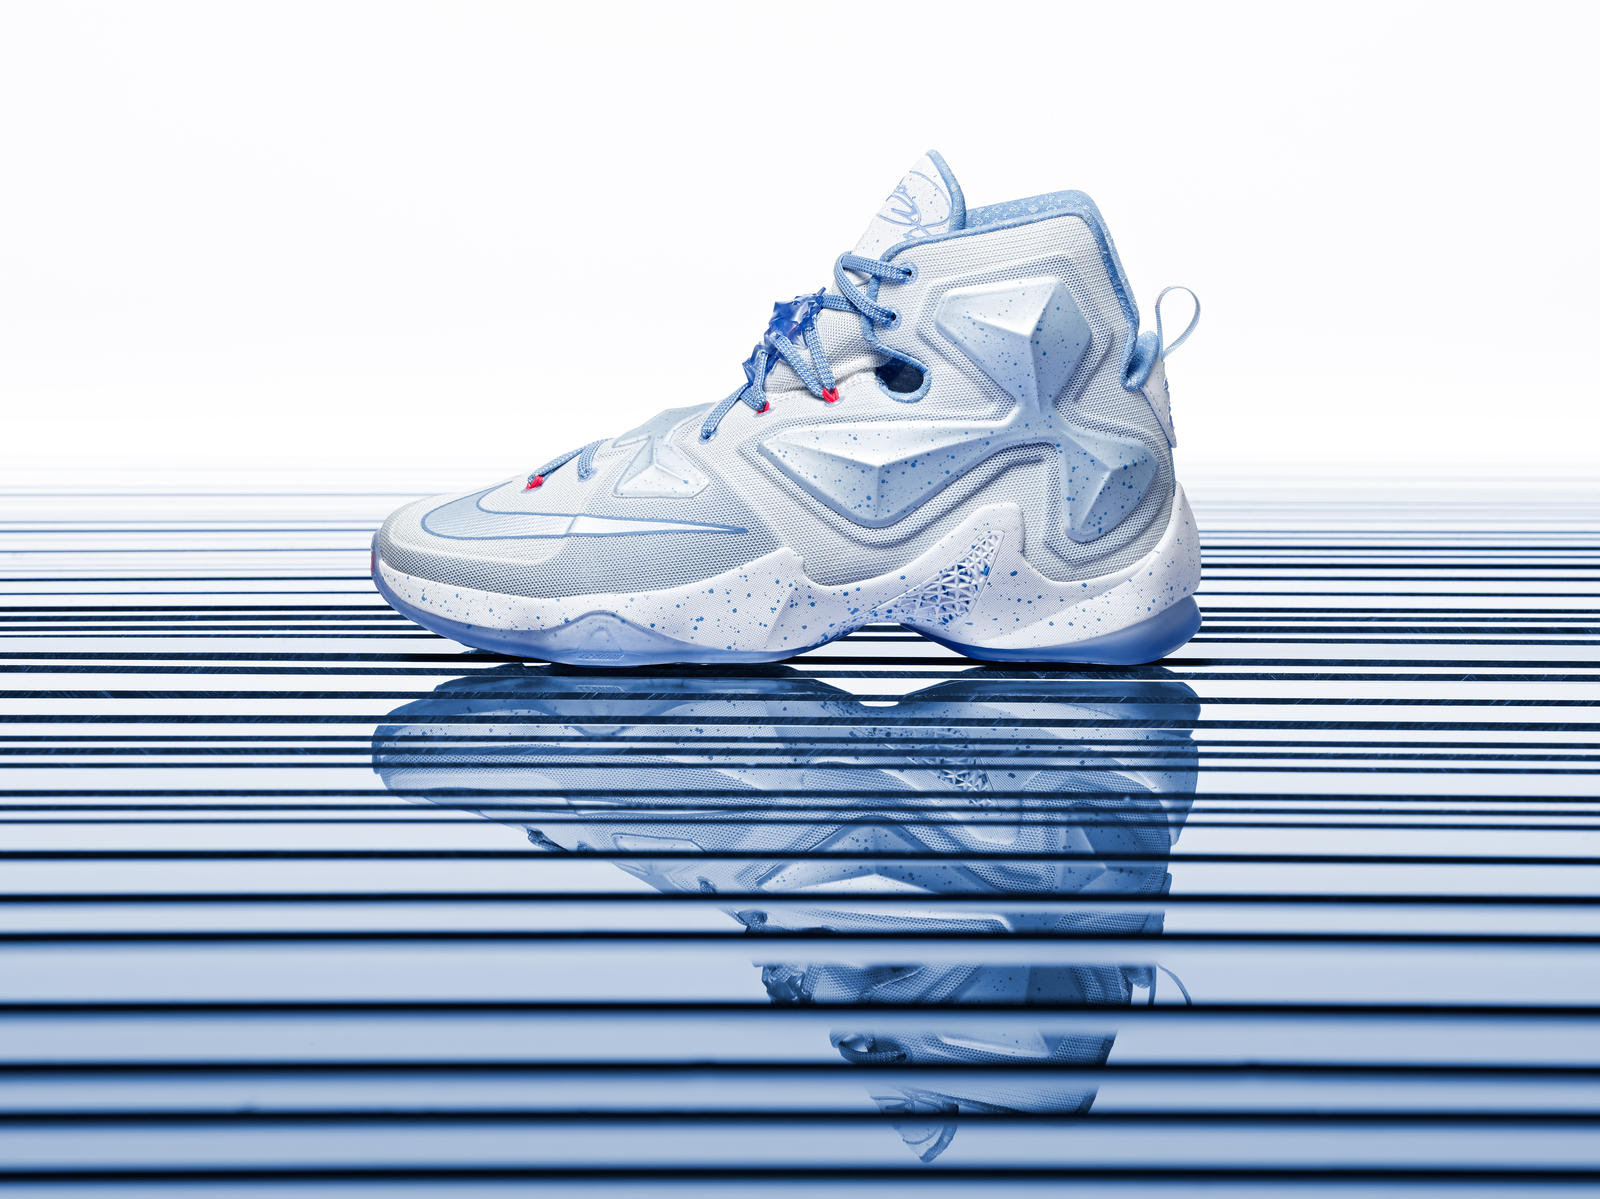 55784e02442 Fierce Midwest winters inspire the icy blue hues that run throughout the  LEBRON 13